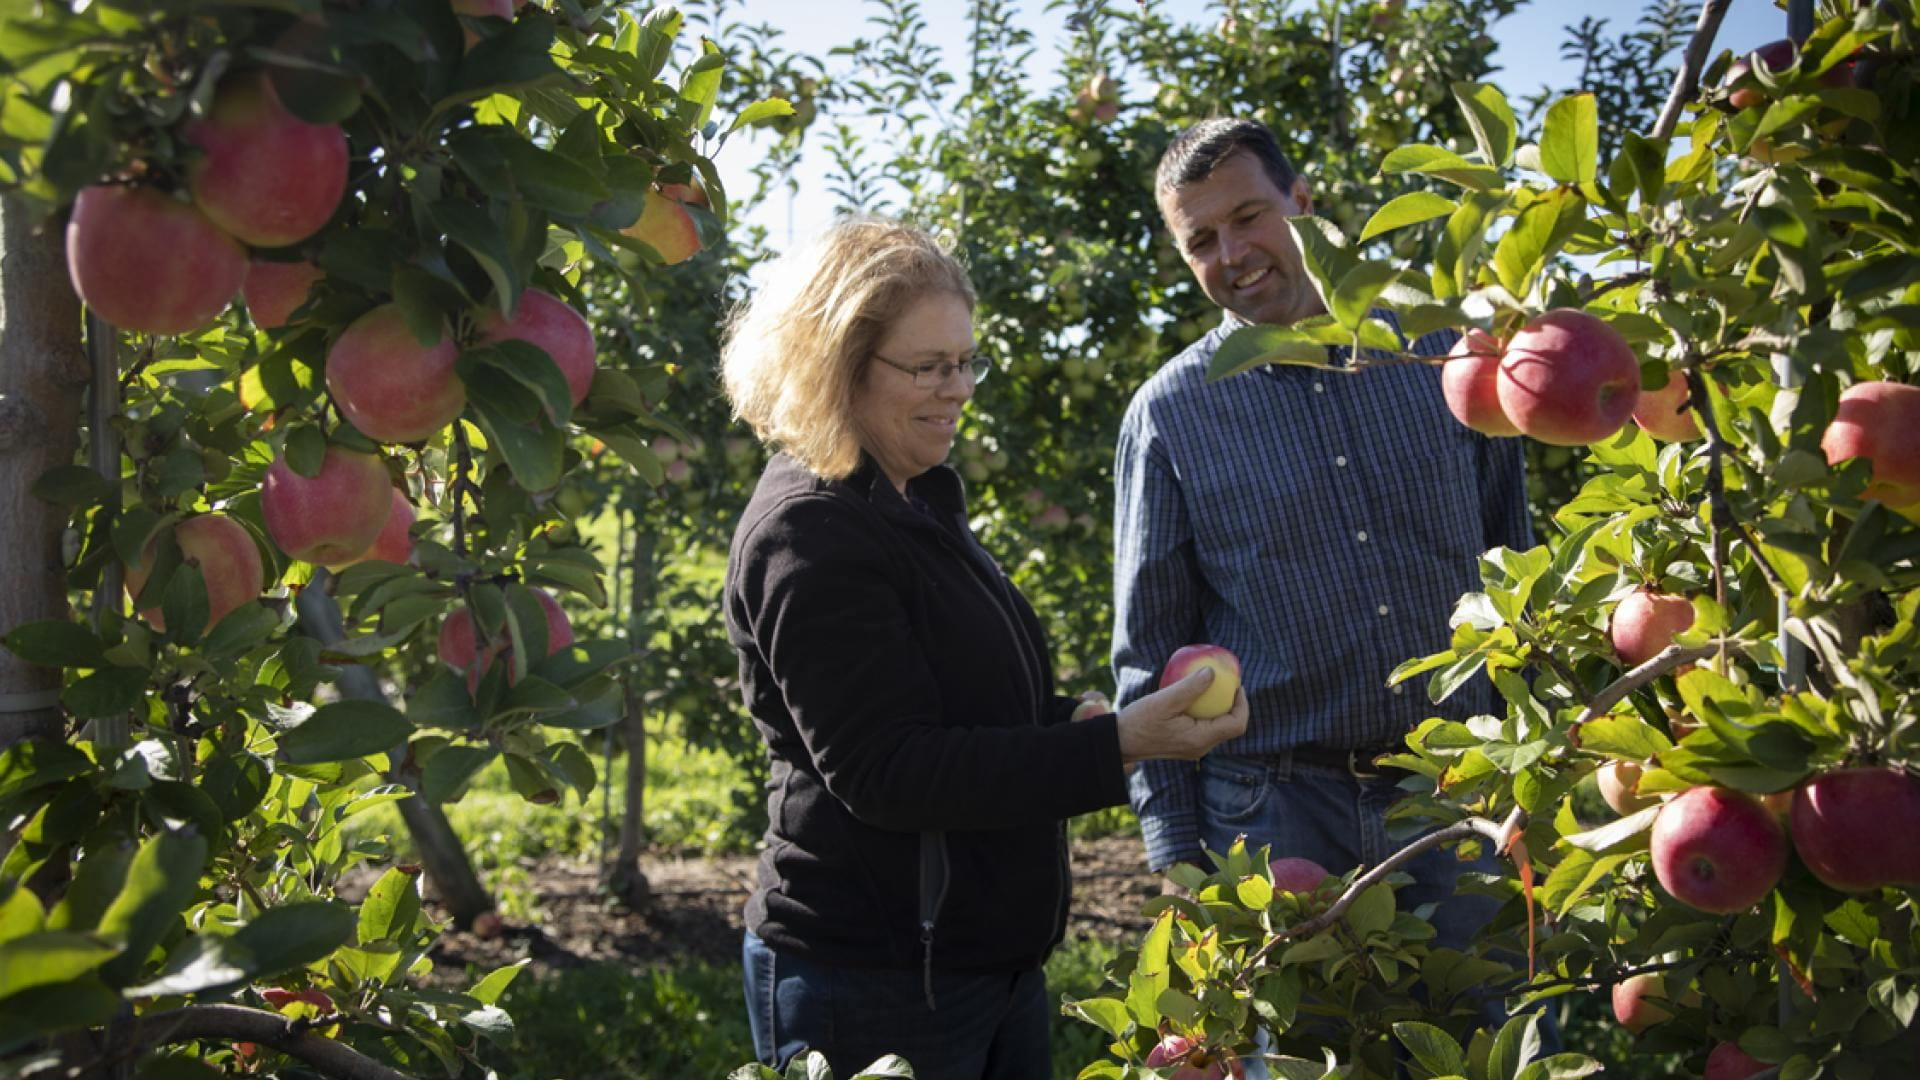 susan broown with technician in orchard